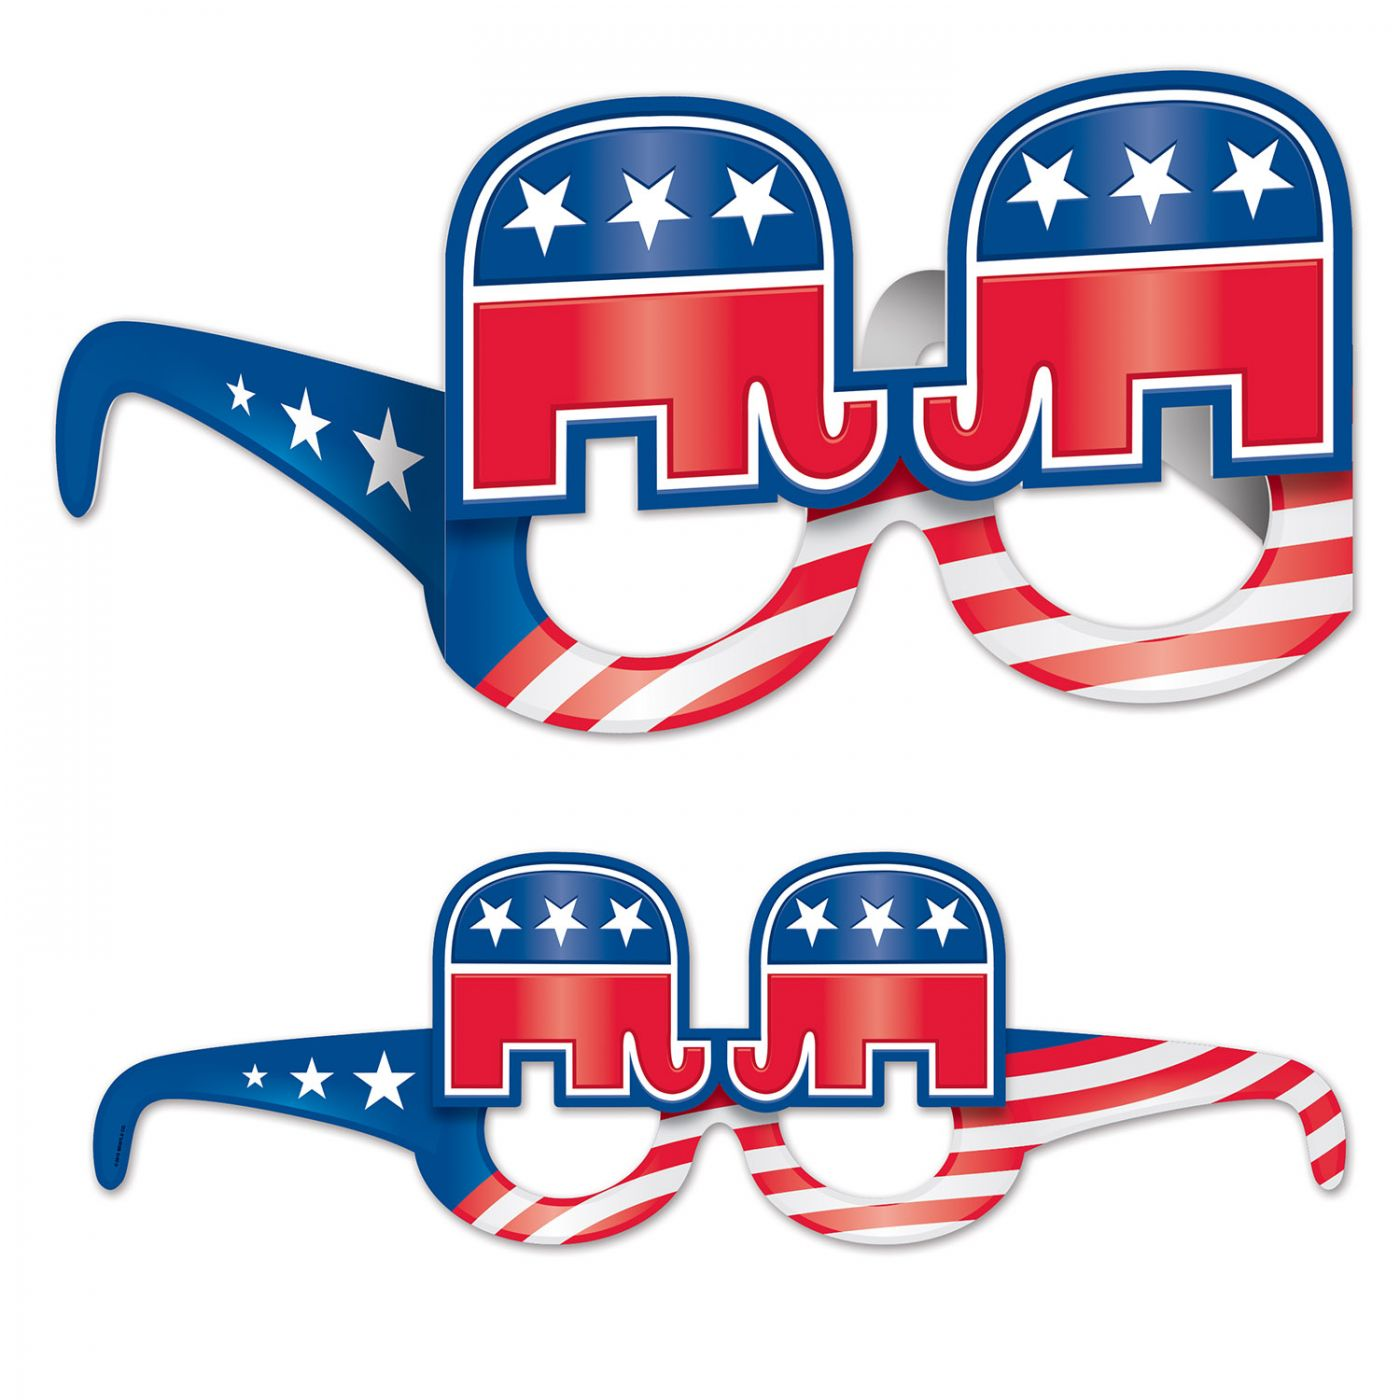 Republican Eyeglasses image